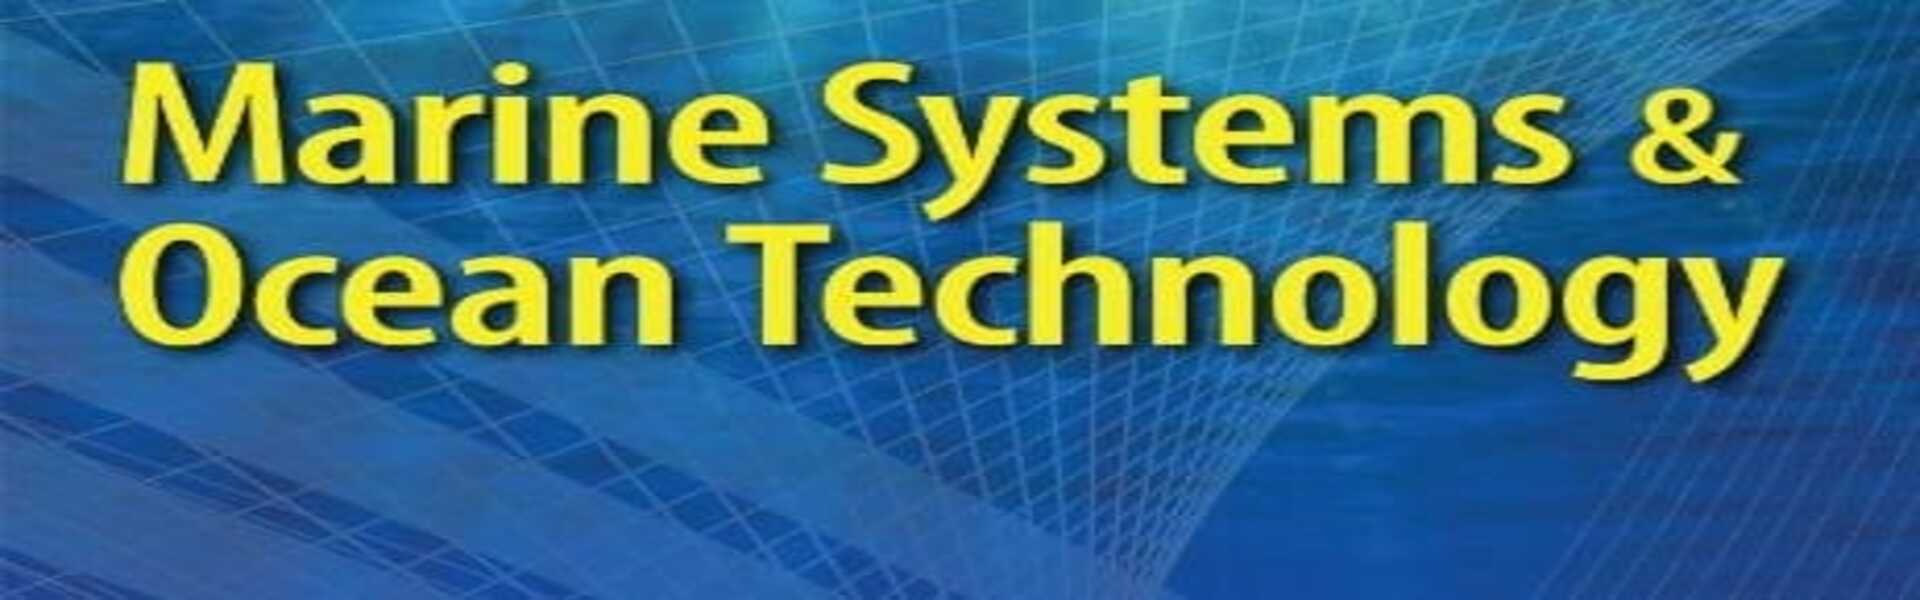 MSOT - Marine Systems & Ocean Technology